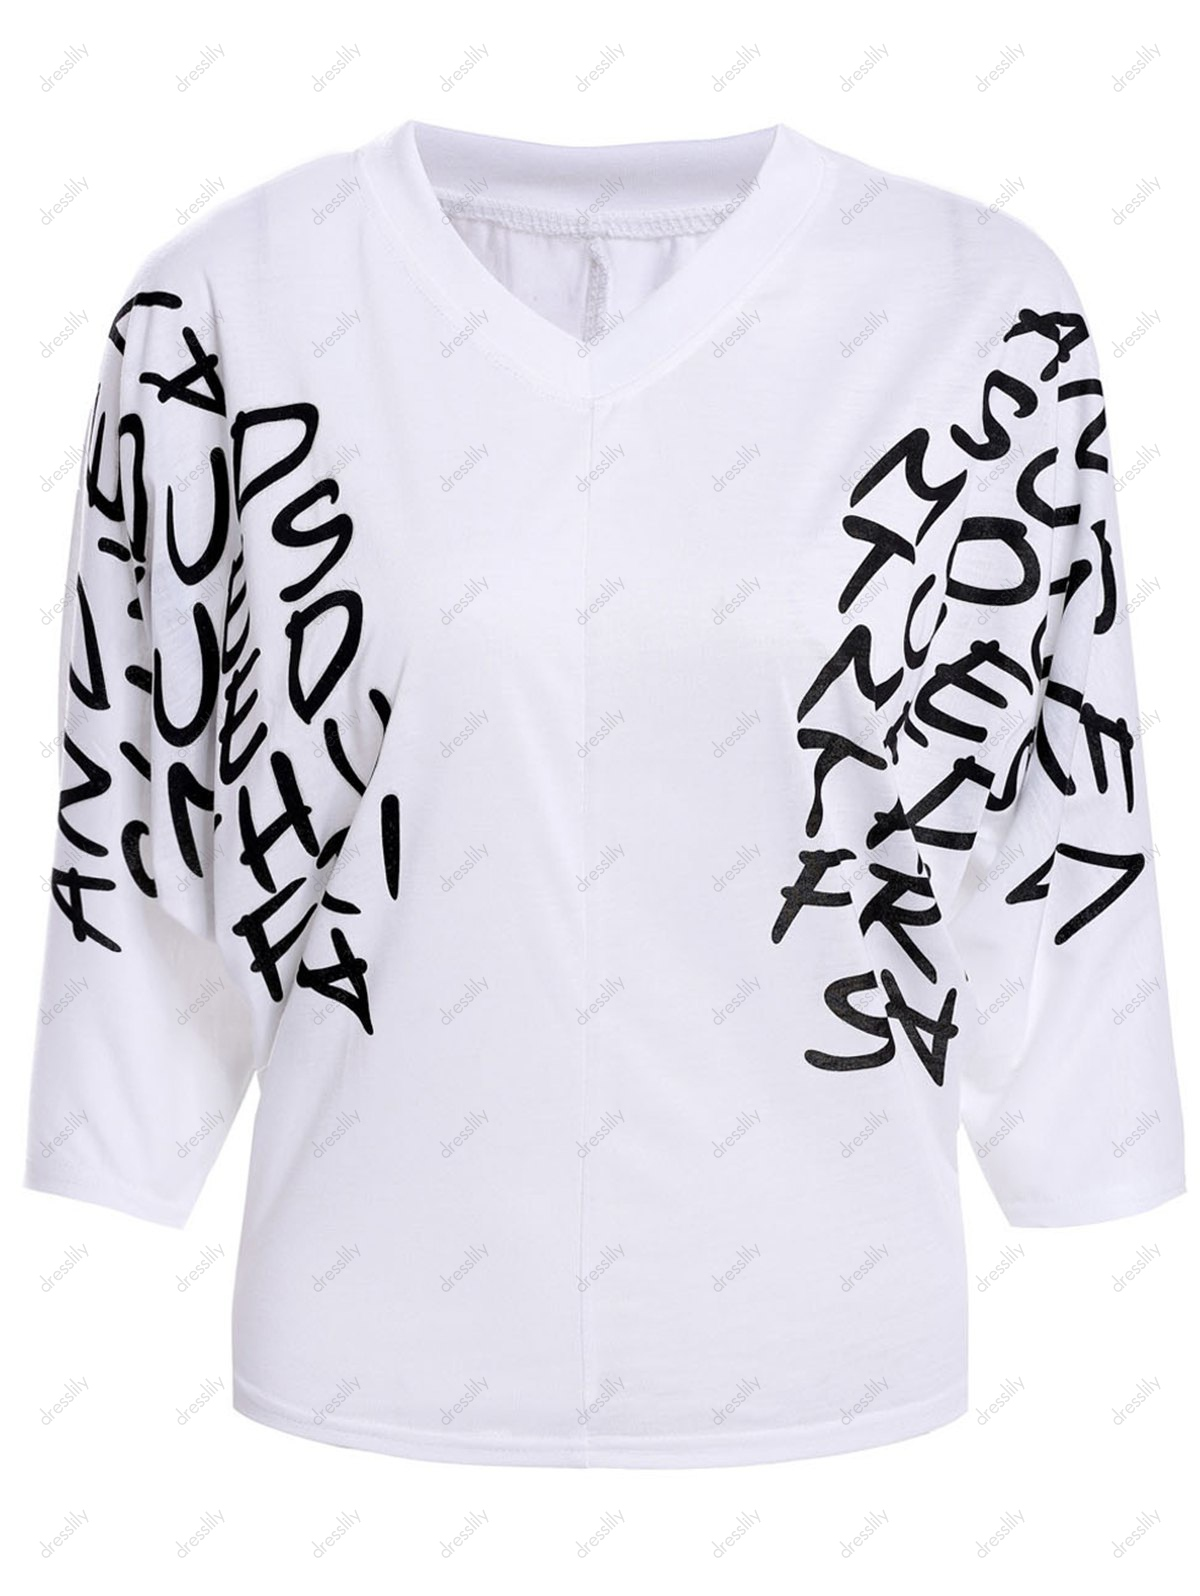 New Dolman Short Sleeve Letter Print Tops Blouses T-Shirts